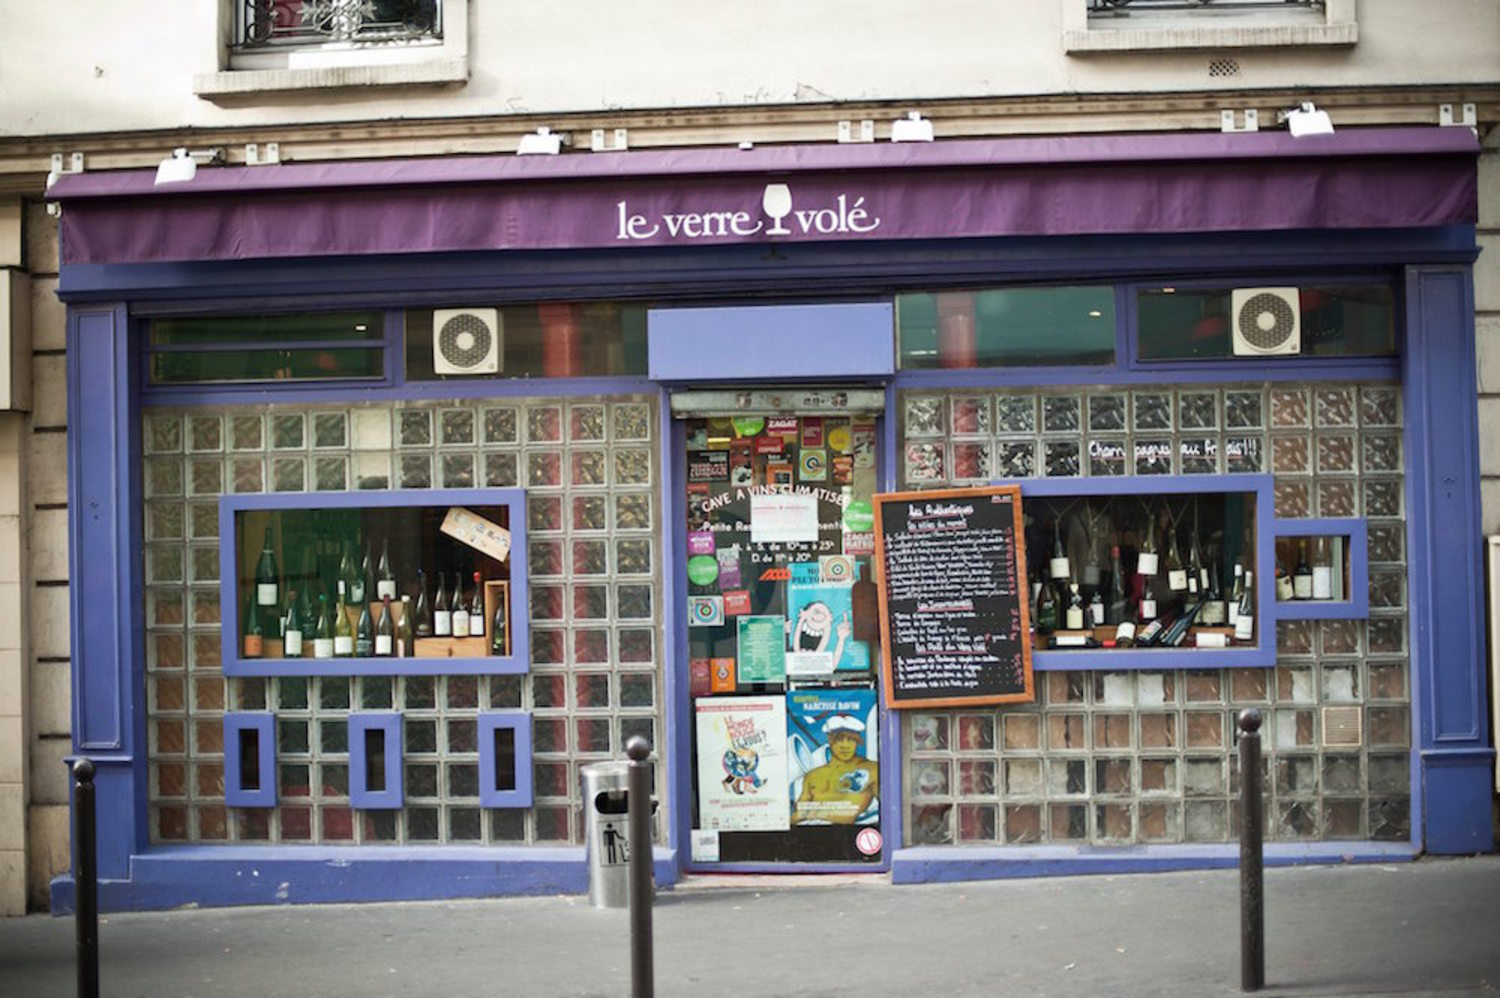 Le Verre Volé in Paris